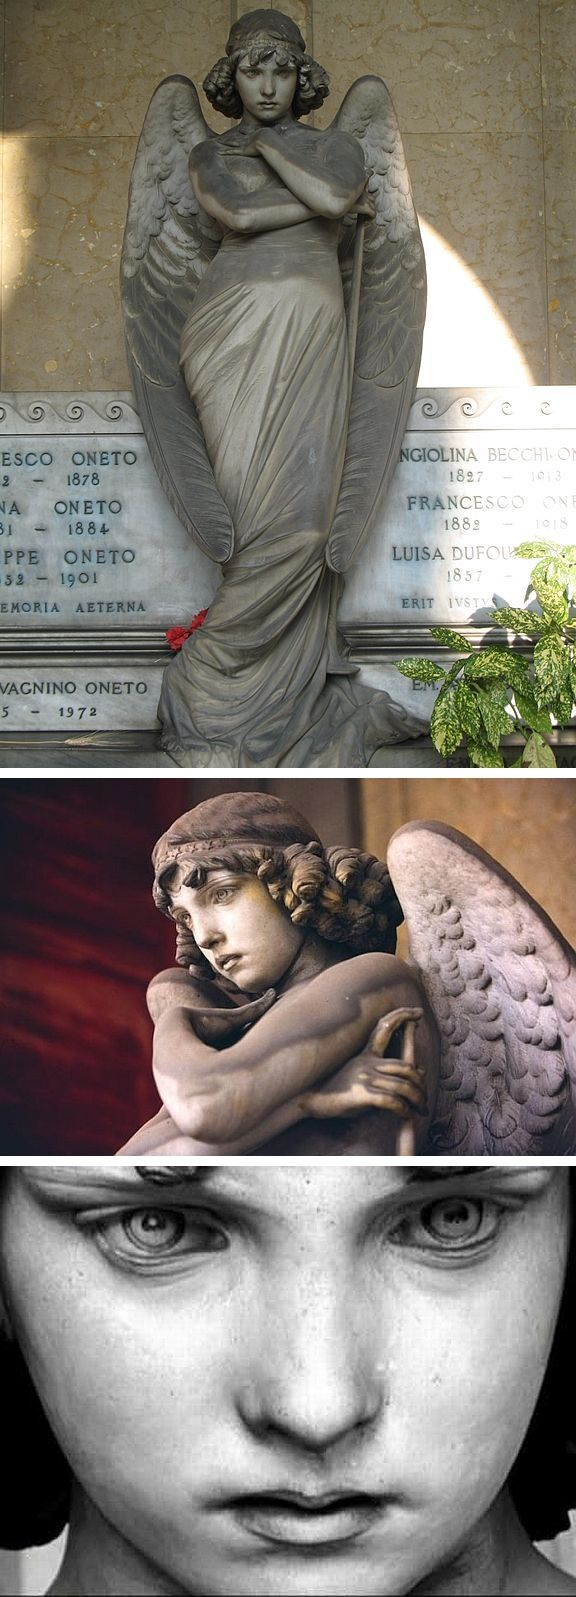 Angel of the Resurrection ~ marble statue before the tomb of the Oneto family, sculpted by Giulio Monteverde, c.1882. Sometimes called the Monteverde angel. Cimitero monumentale di Staglieno, Genoa, Italy #cemetery #monument